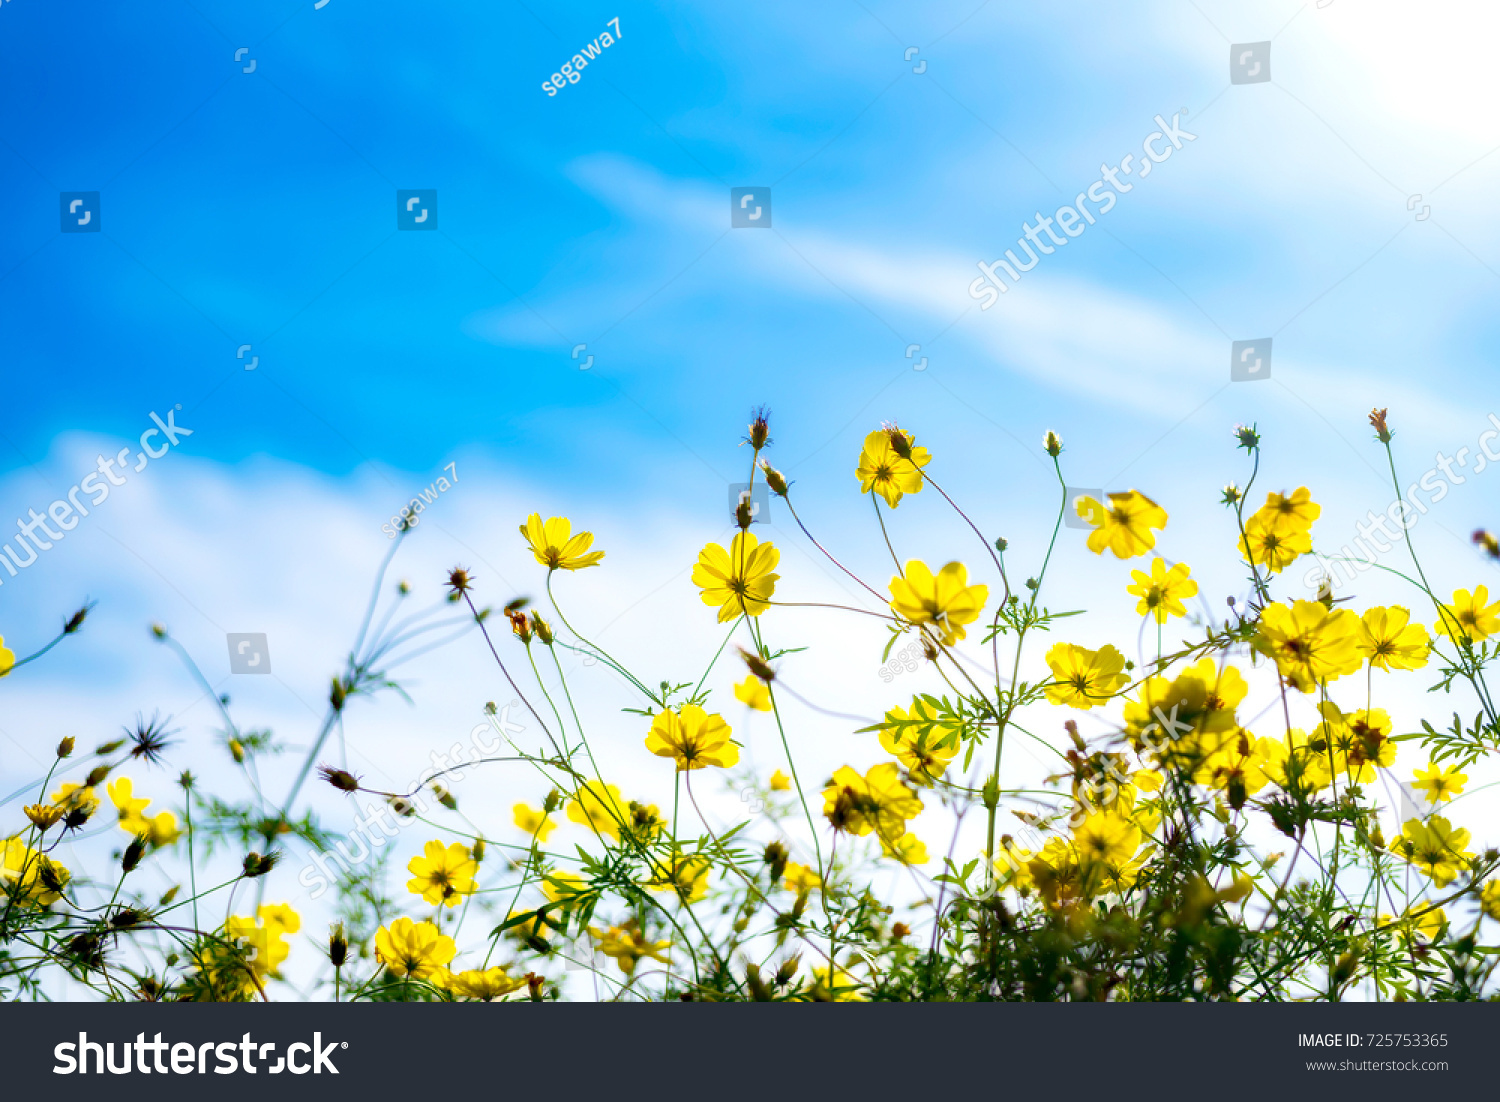 Beautiful scenery cosmos flowers buds blue stock photo edit now beautiful scenery of cosmos flowers and buds with blue sky background izmirmasajfo